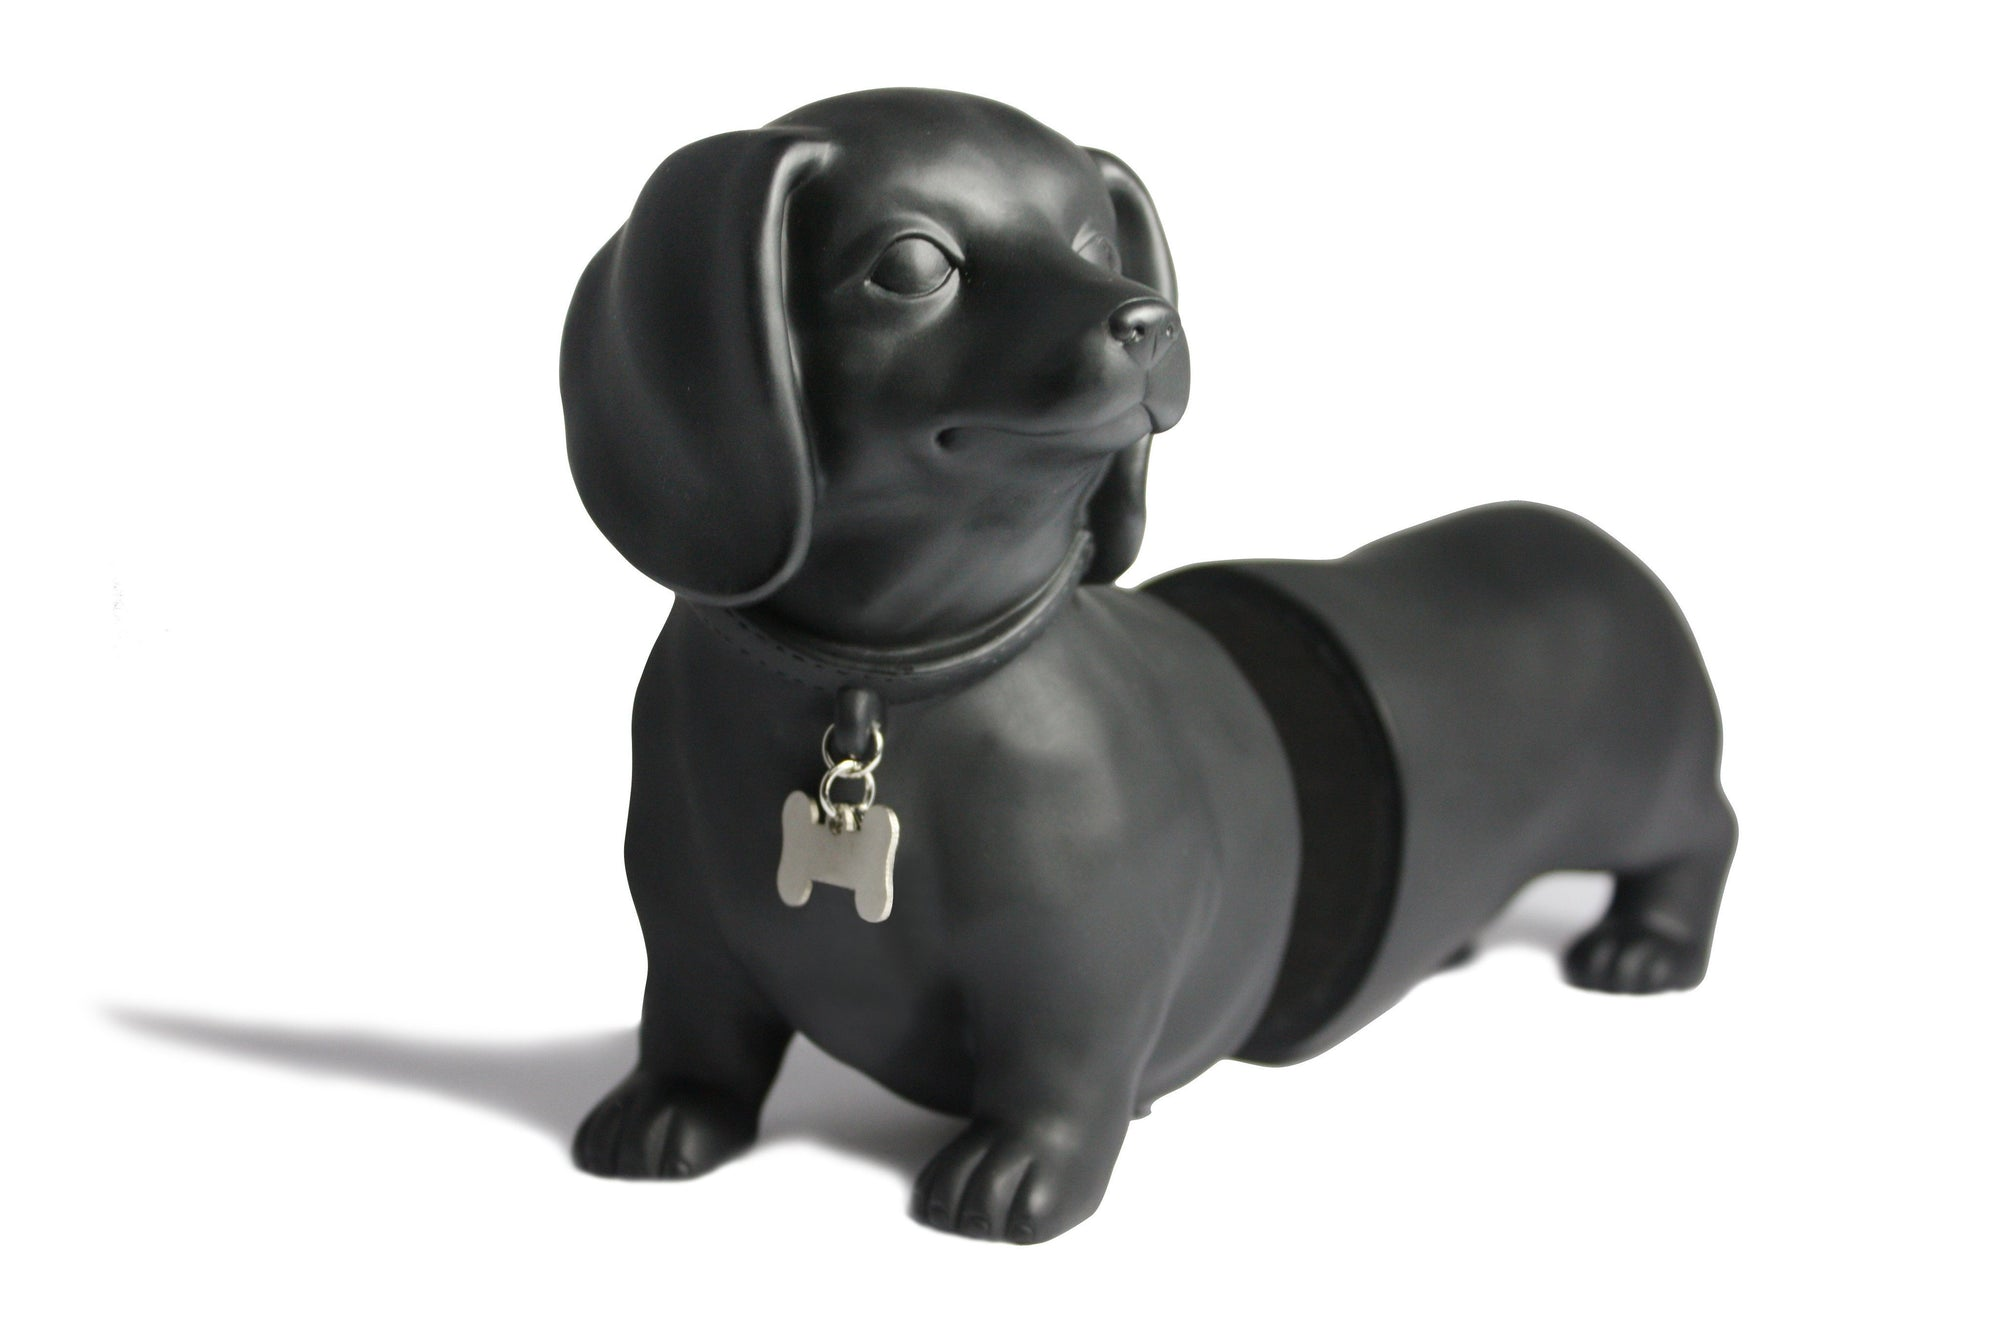 Sausage Dog Dachshund Bookends - Black - kuyesa DESIGN - Yellow Octopus